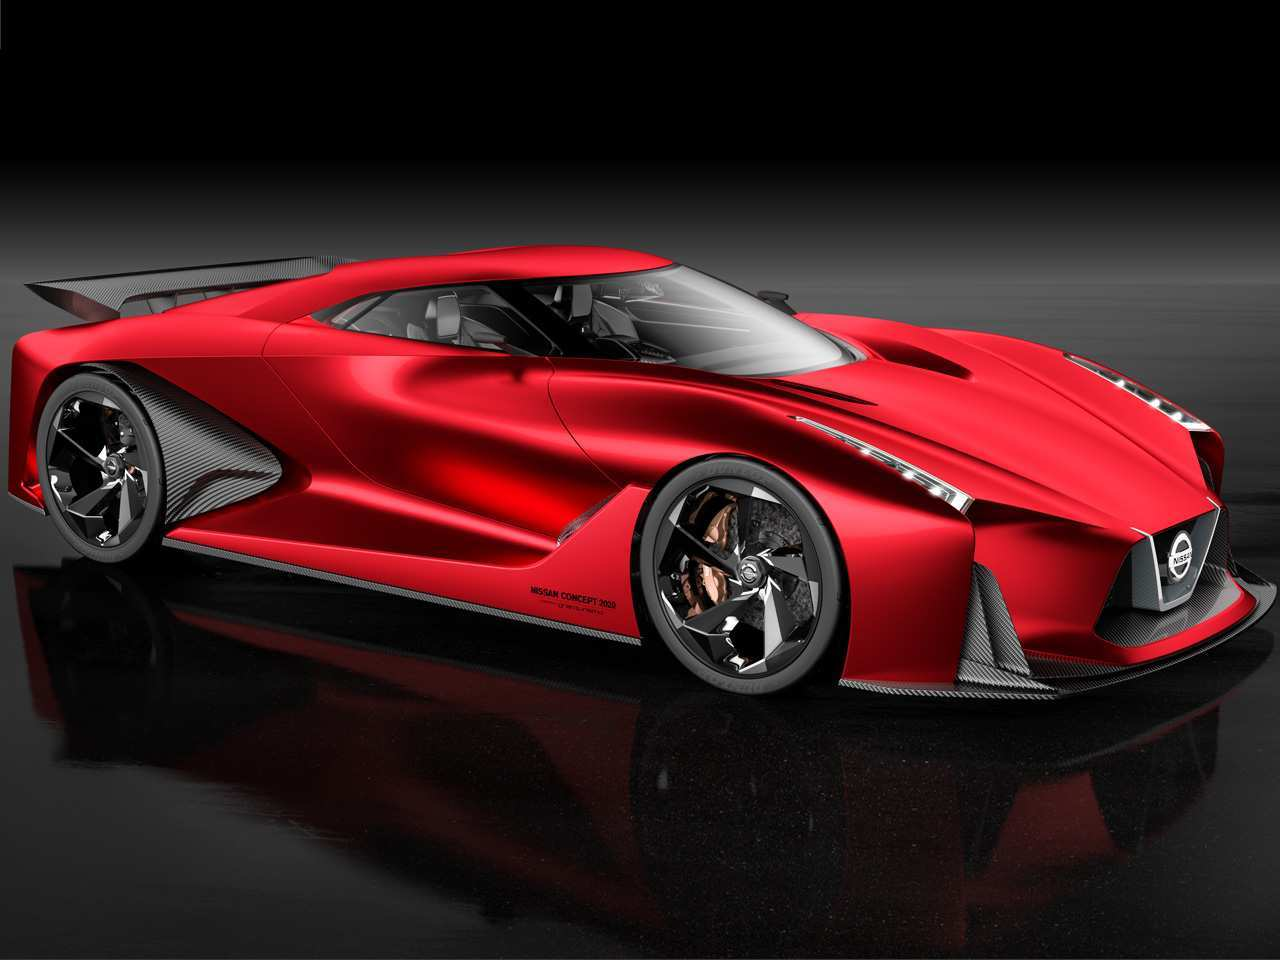 17 All New Nissan Gtr R36 2020 Price Design and Review